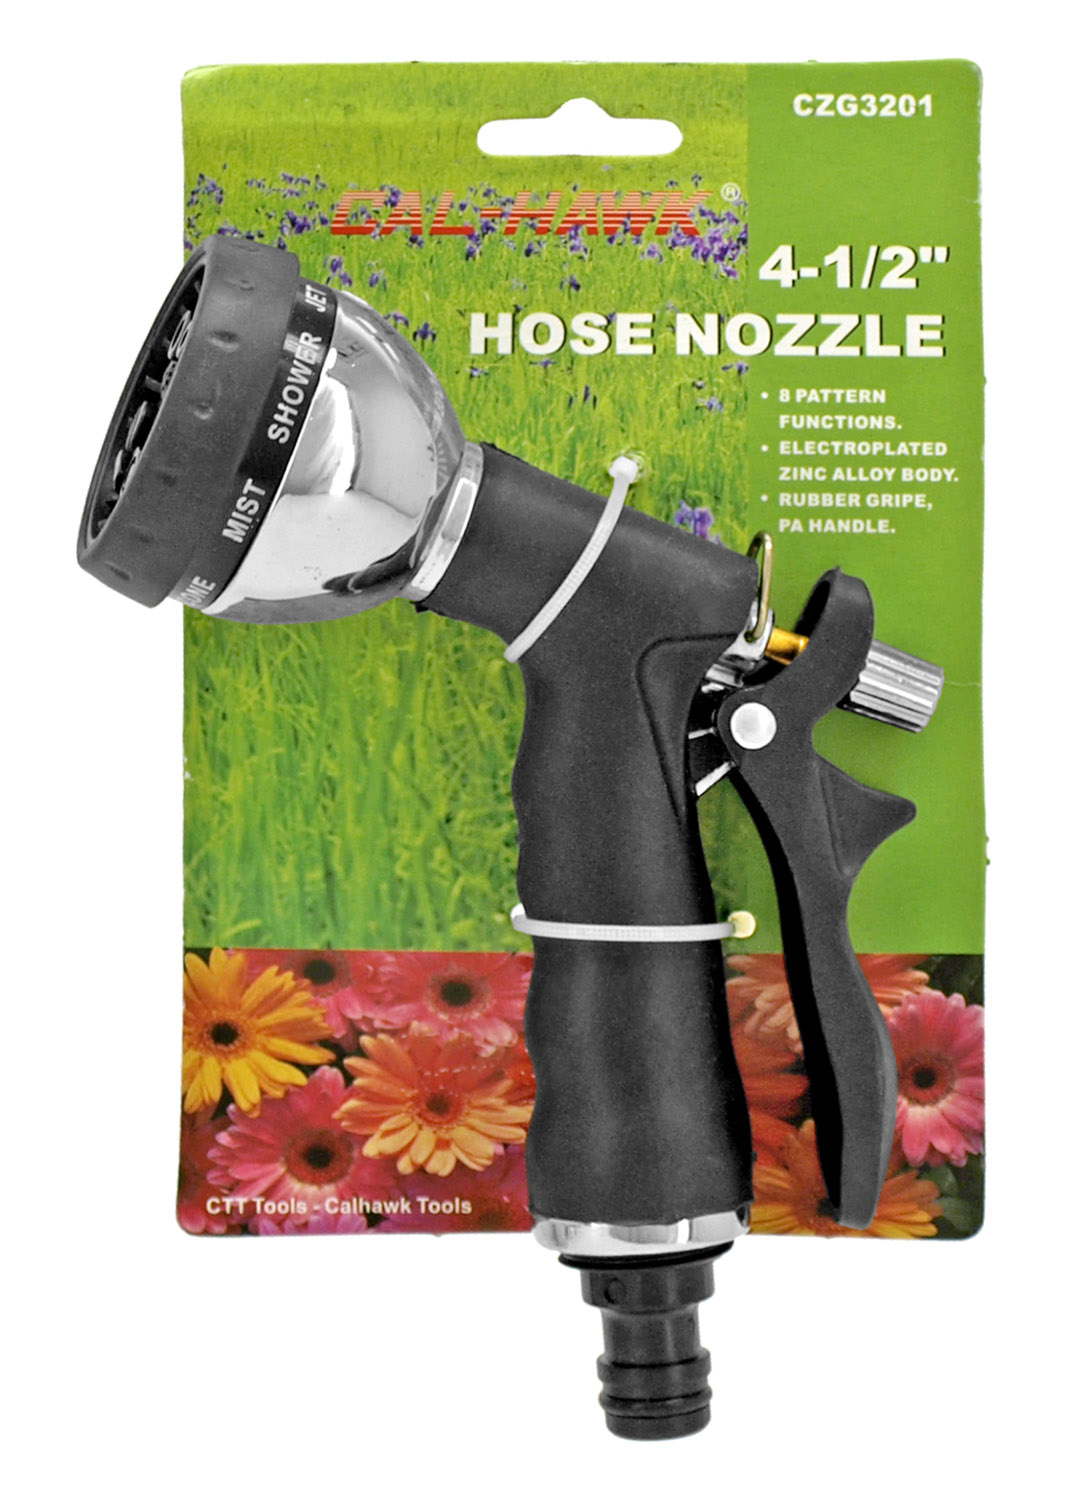 Cal-Hawk 7.25 in Hose Nozzle